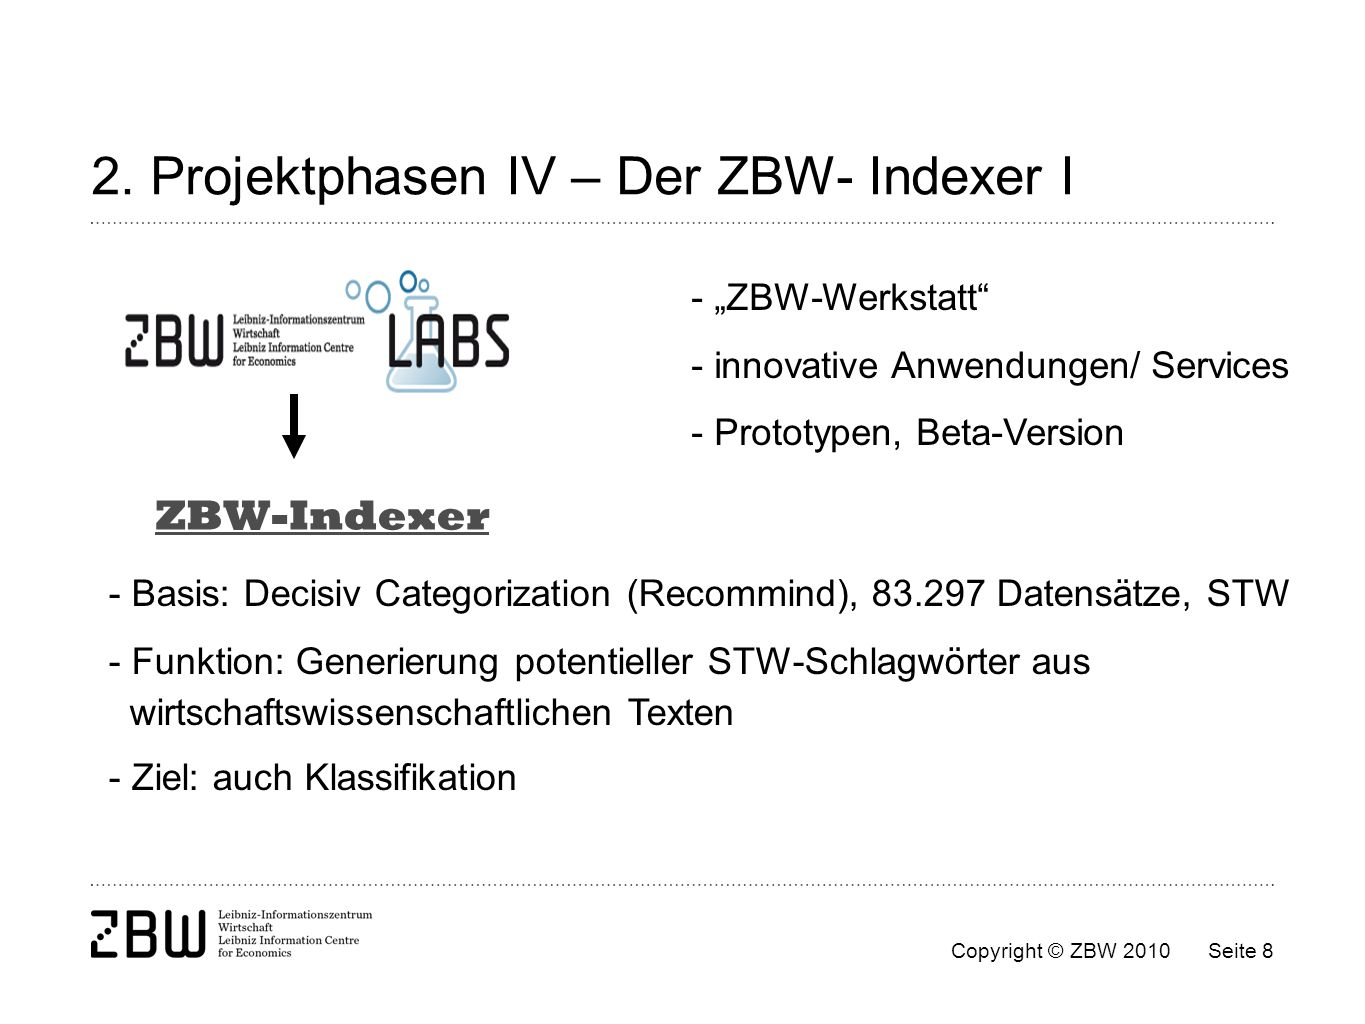 2. Projektphasen IV – Der ZBW- Indexer I